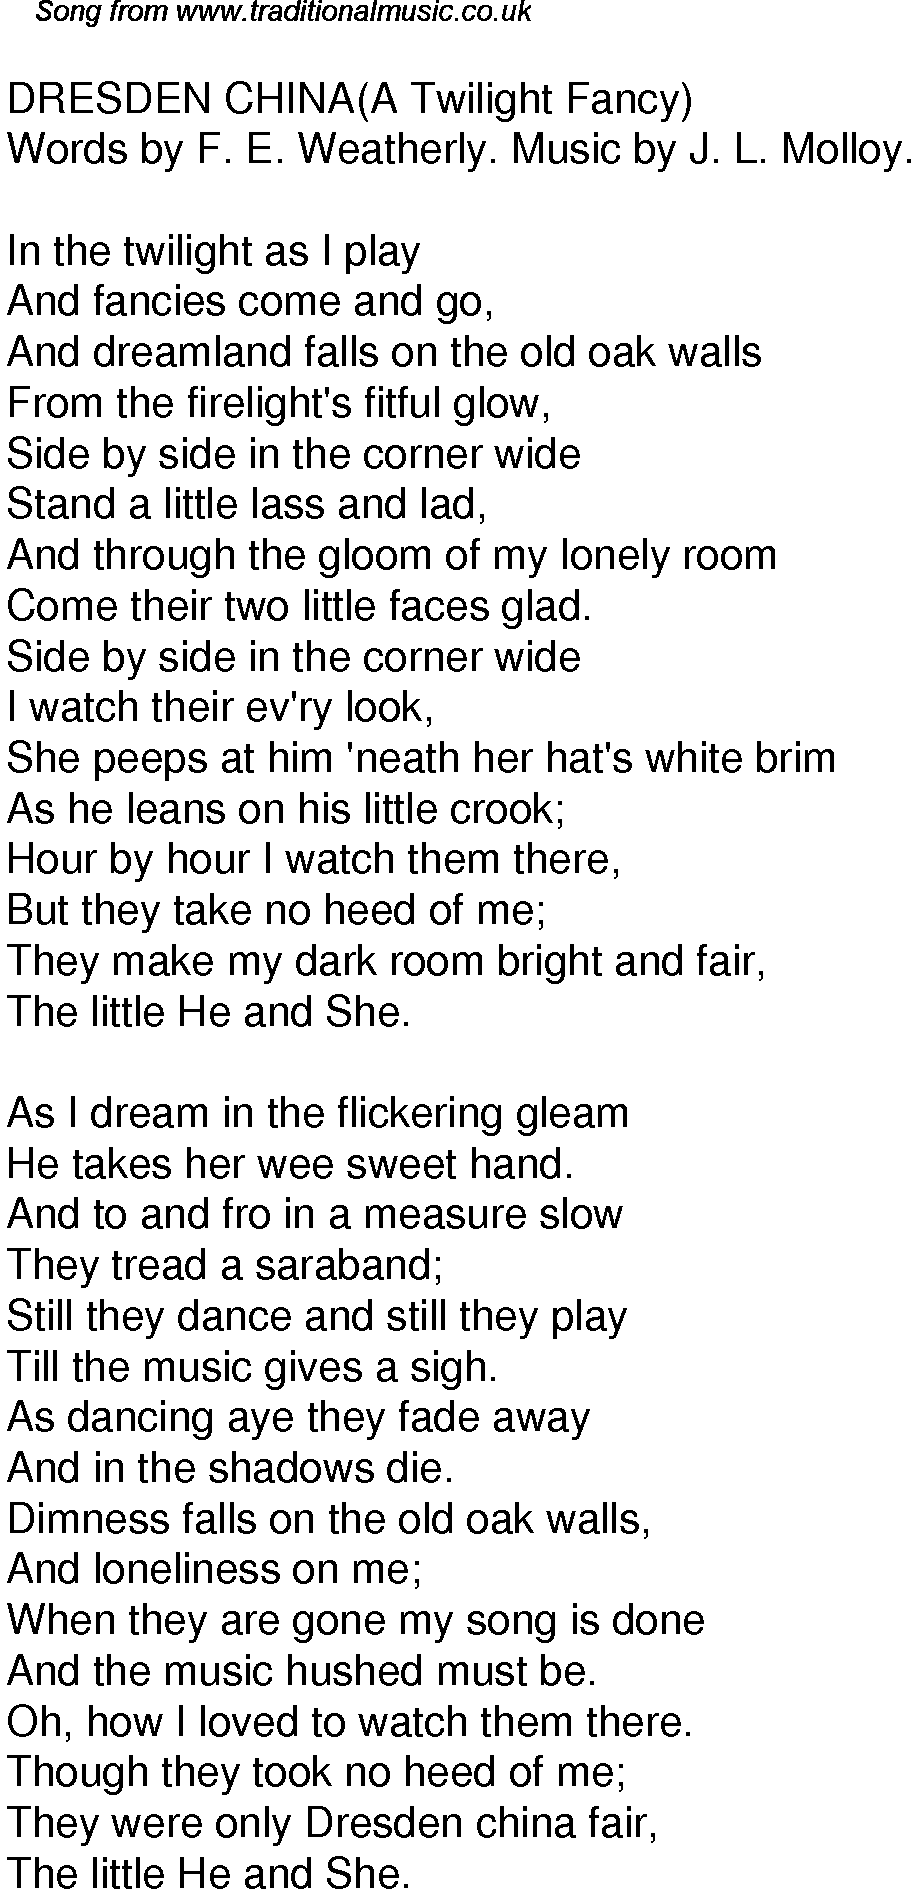 old time song lyrics for 40 dresden china a twilight fancy